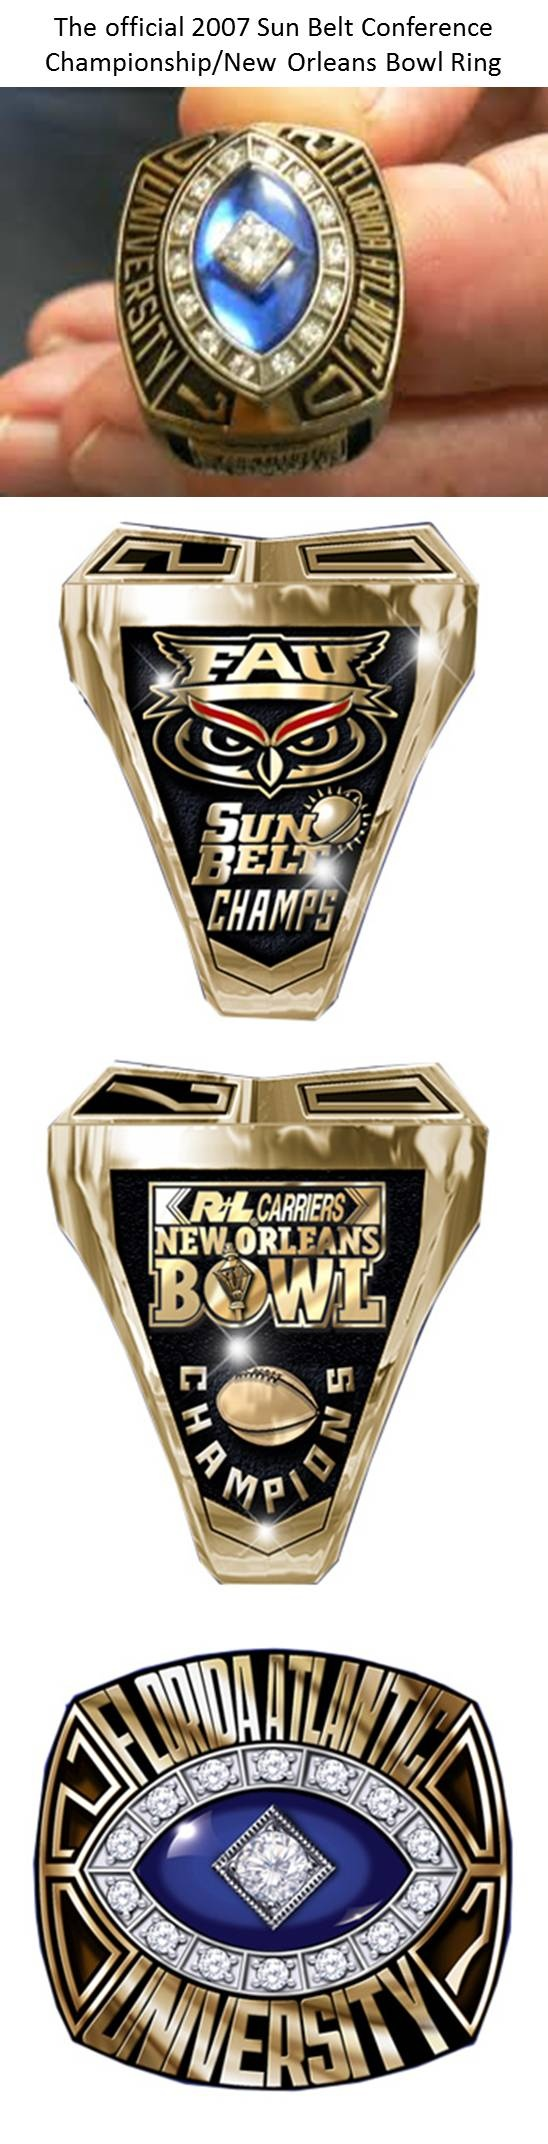 FAU - Florida Atlantic University Owls - the official 2007 Sun Belt Conference Championship - New Orleans Bowl - Ring